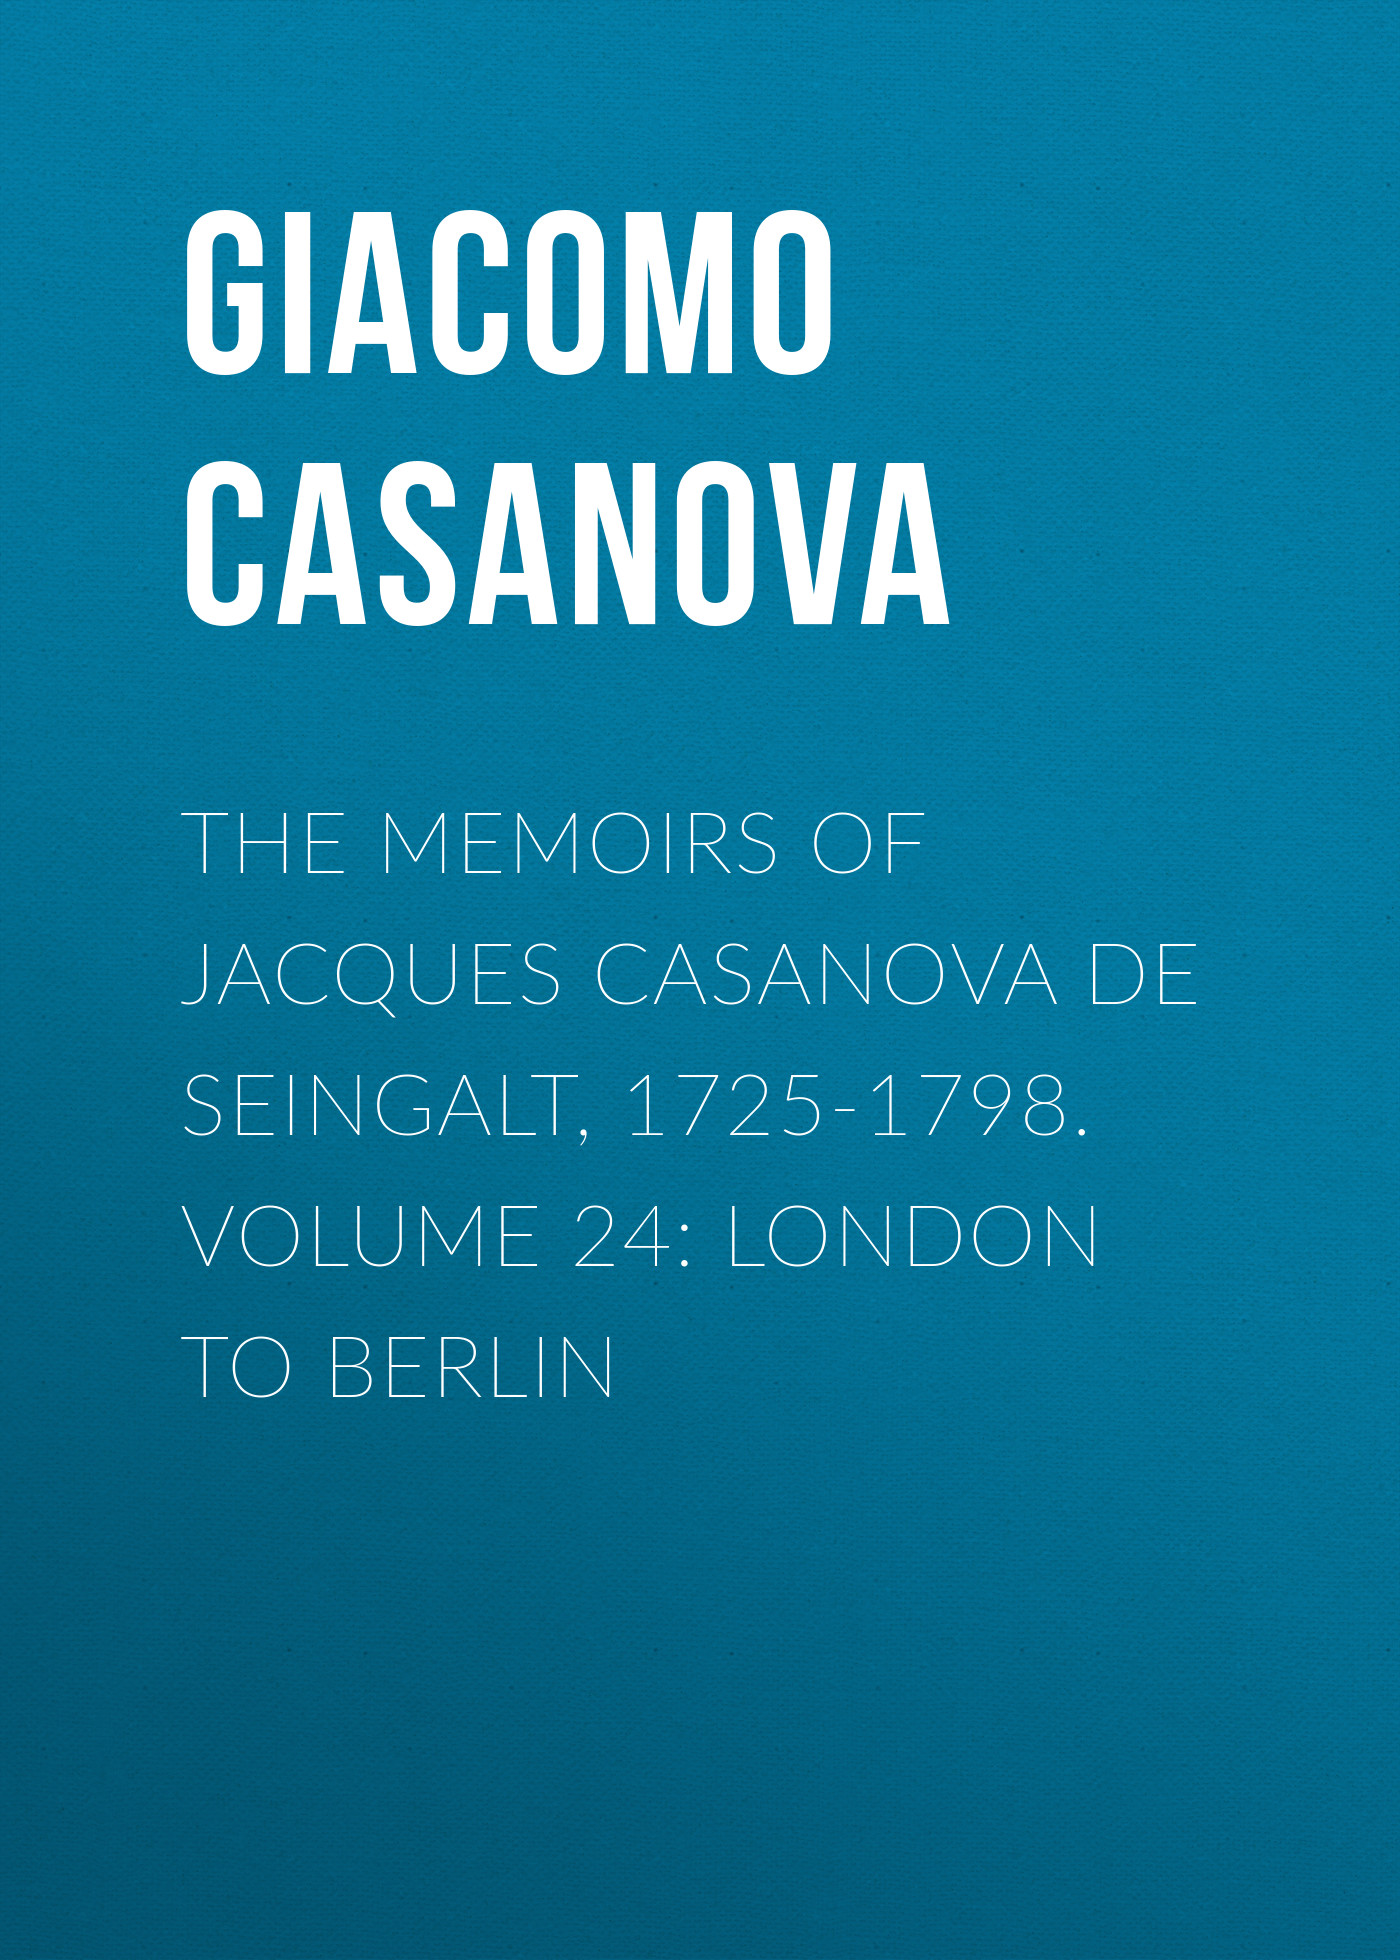 Giacomo Casanova The Memoirs of Jacques Casanova de Seingalt, 1725-1798. Volume 24: London to Berlin giacomo casanova the memoirs of jacques casanova de seingalt 1725 1798 volume 30 old age and death